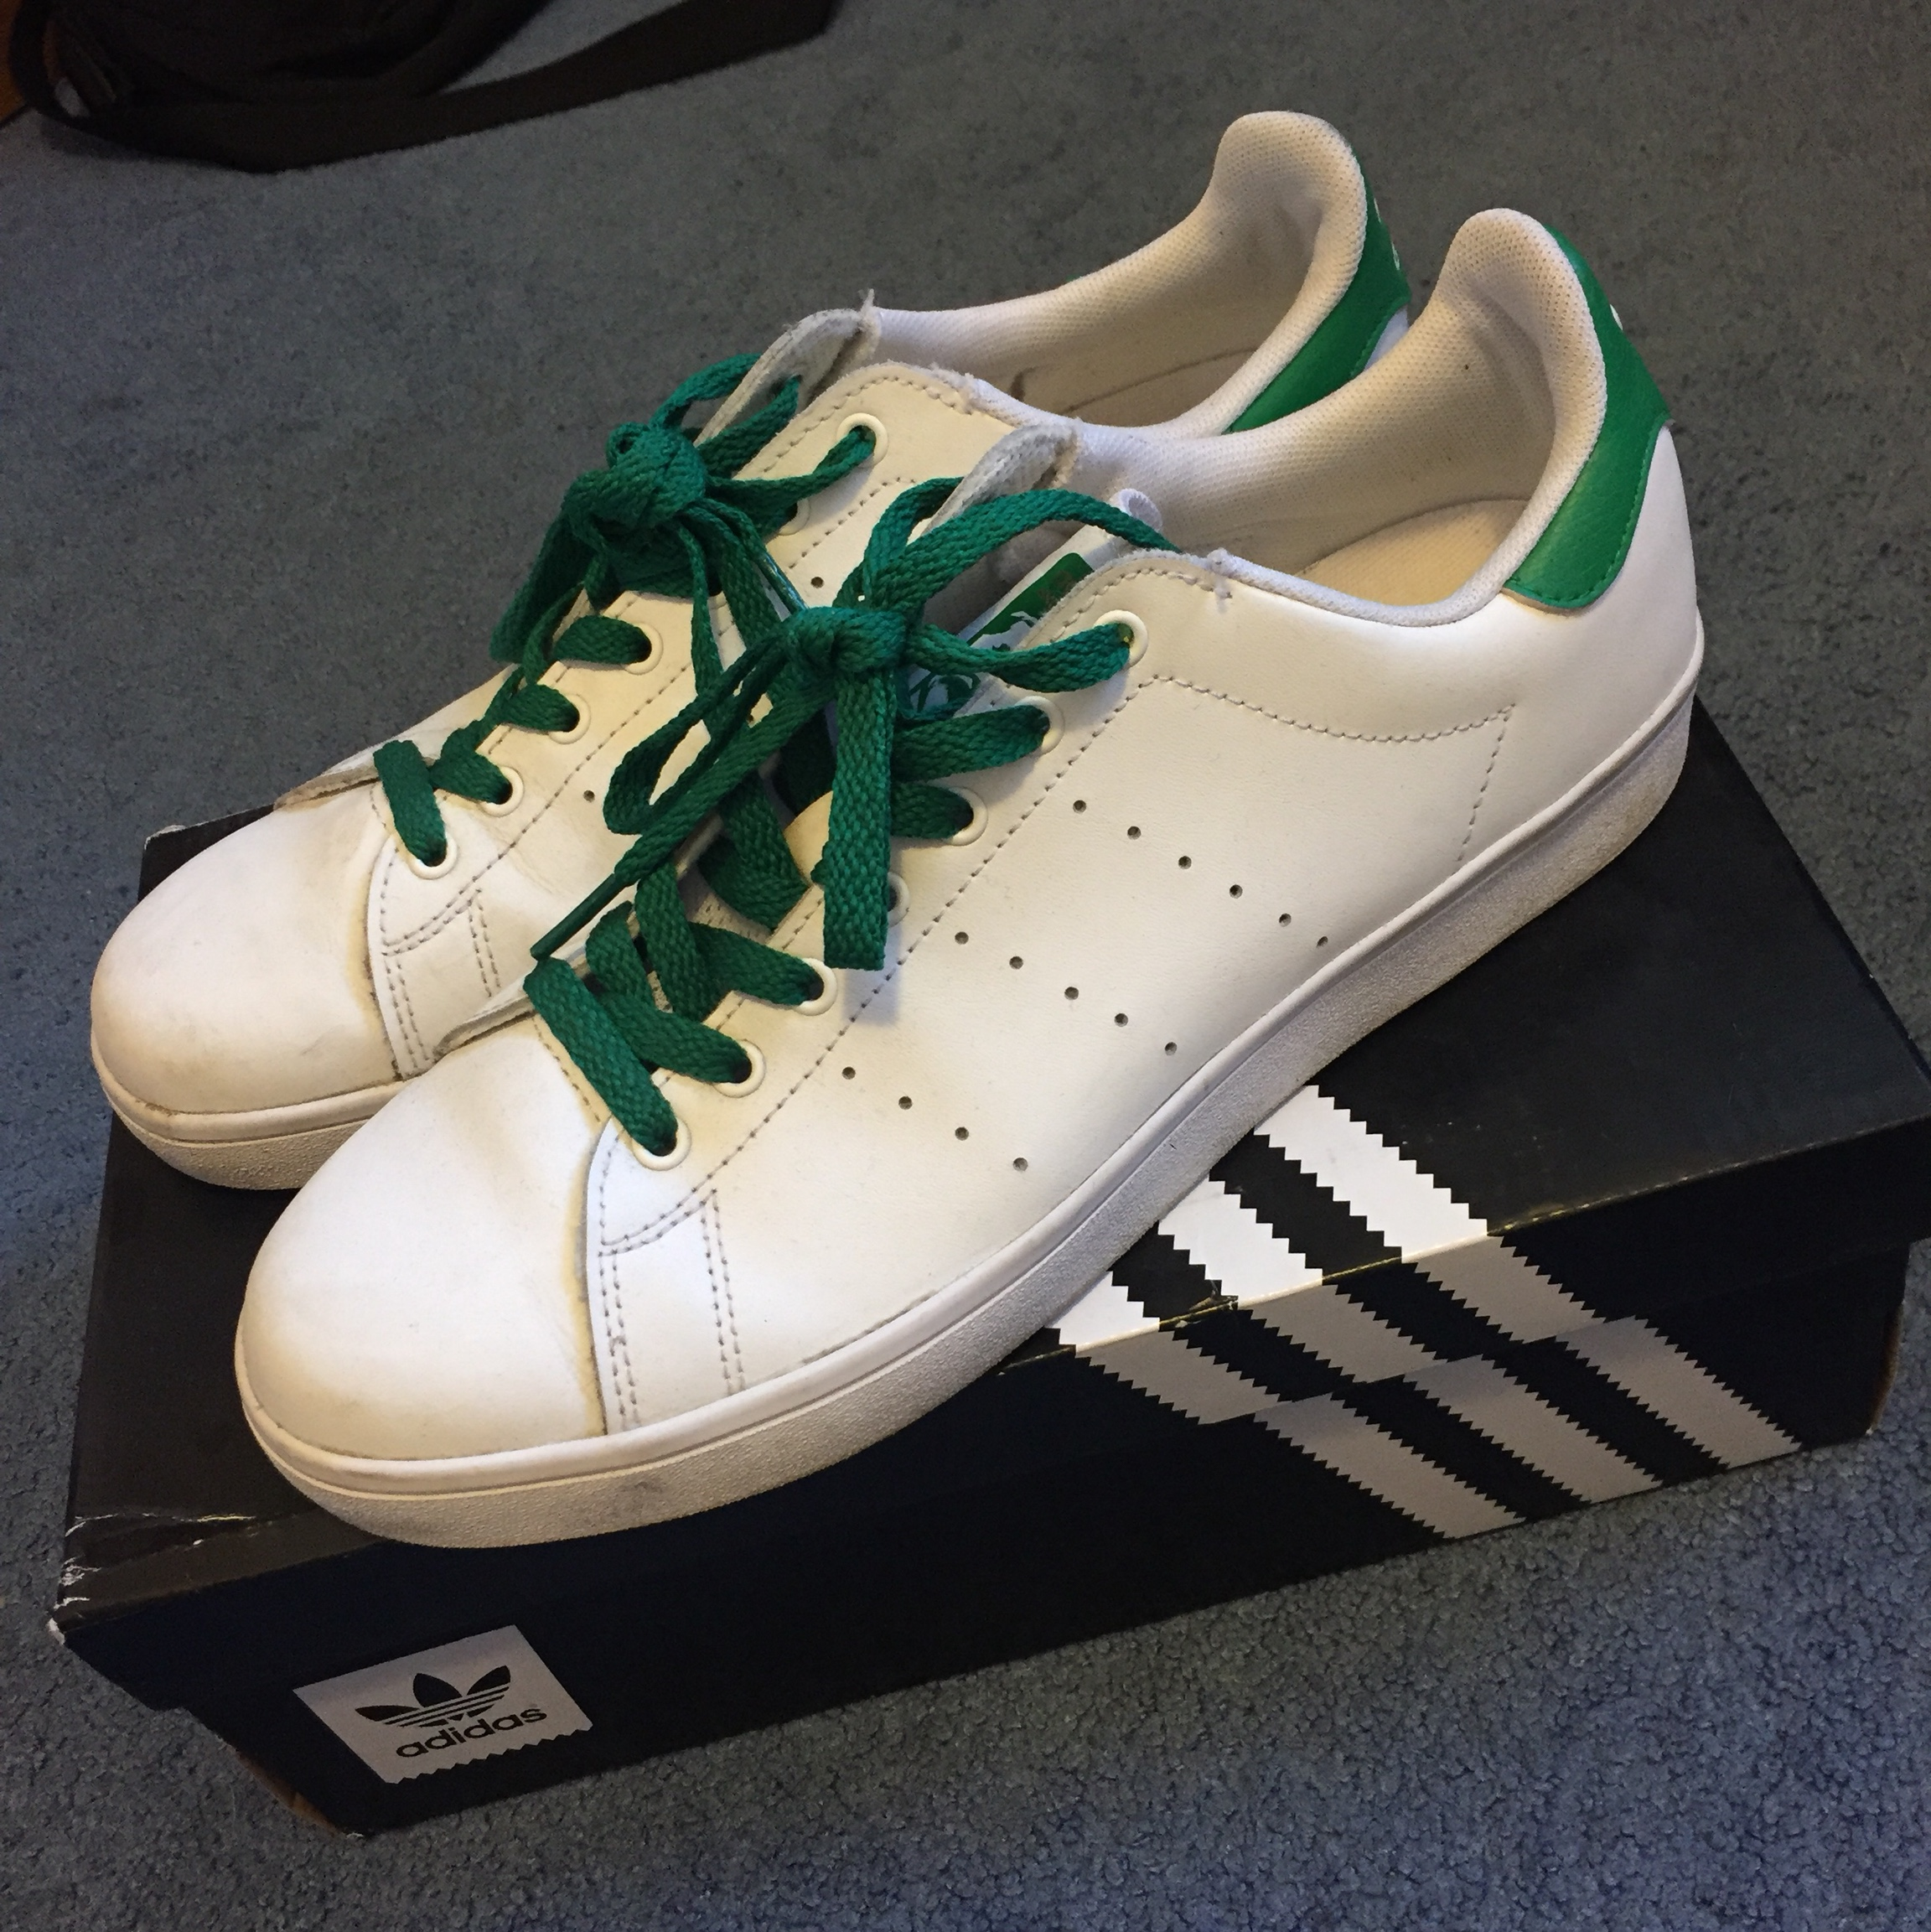 buy online 28a7d e46f9 Adidas Stan Smith Vulc with green laces (Box and... - Depop